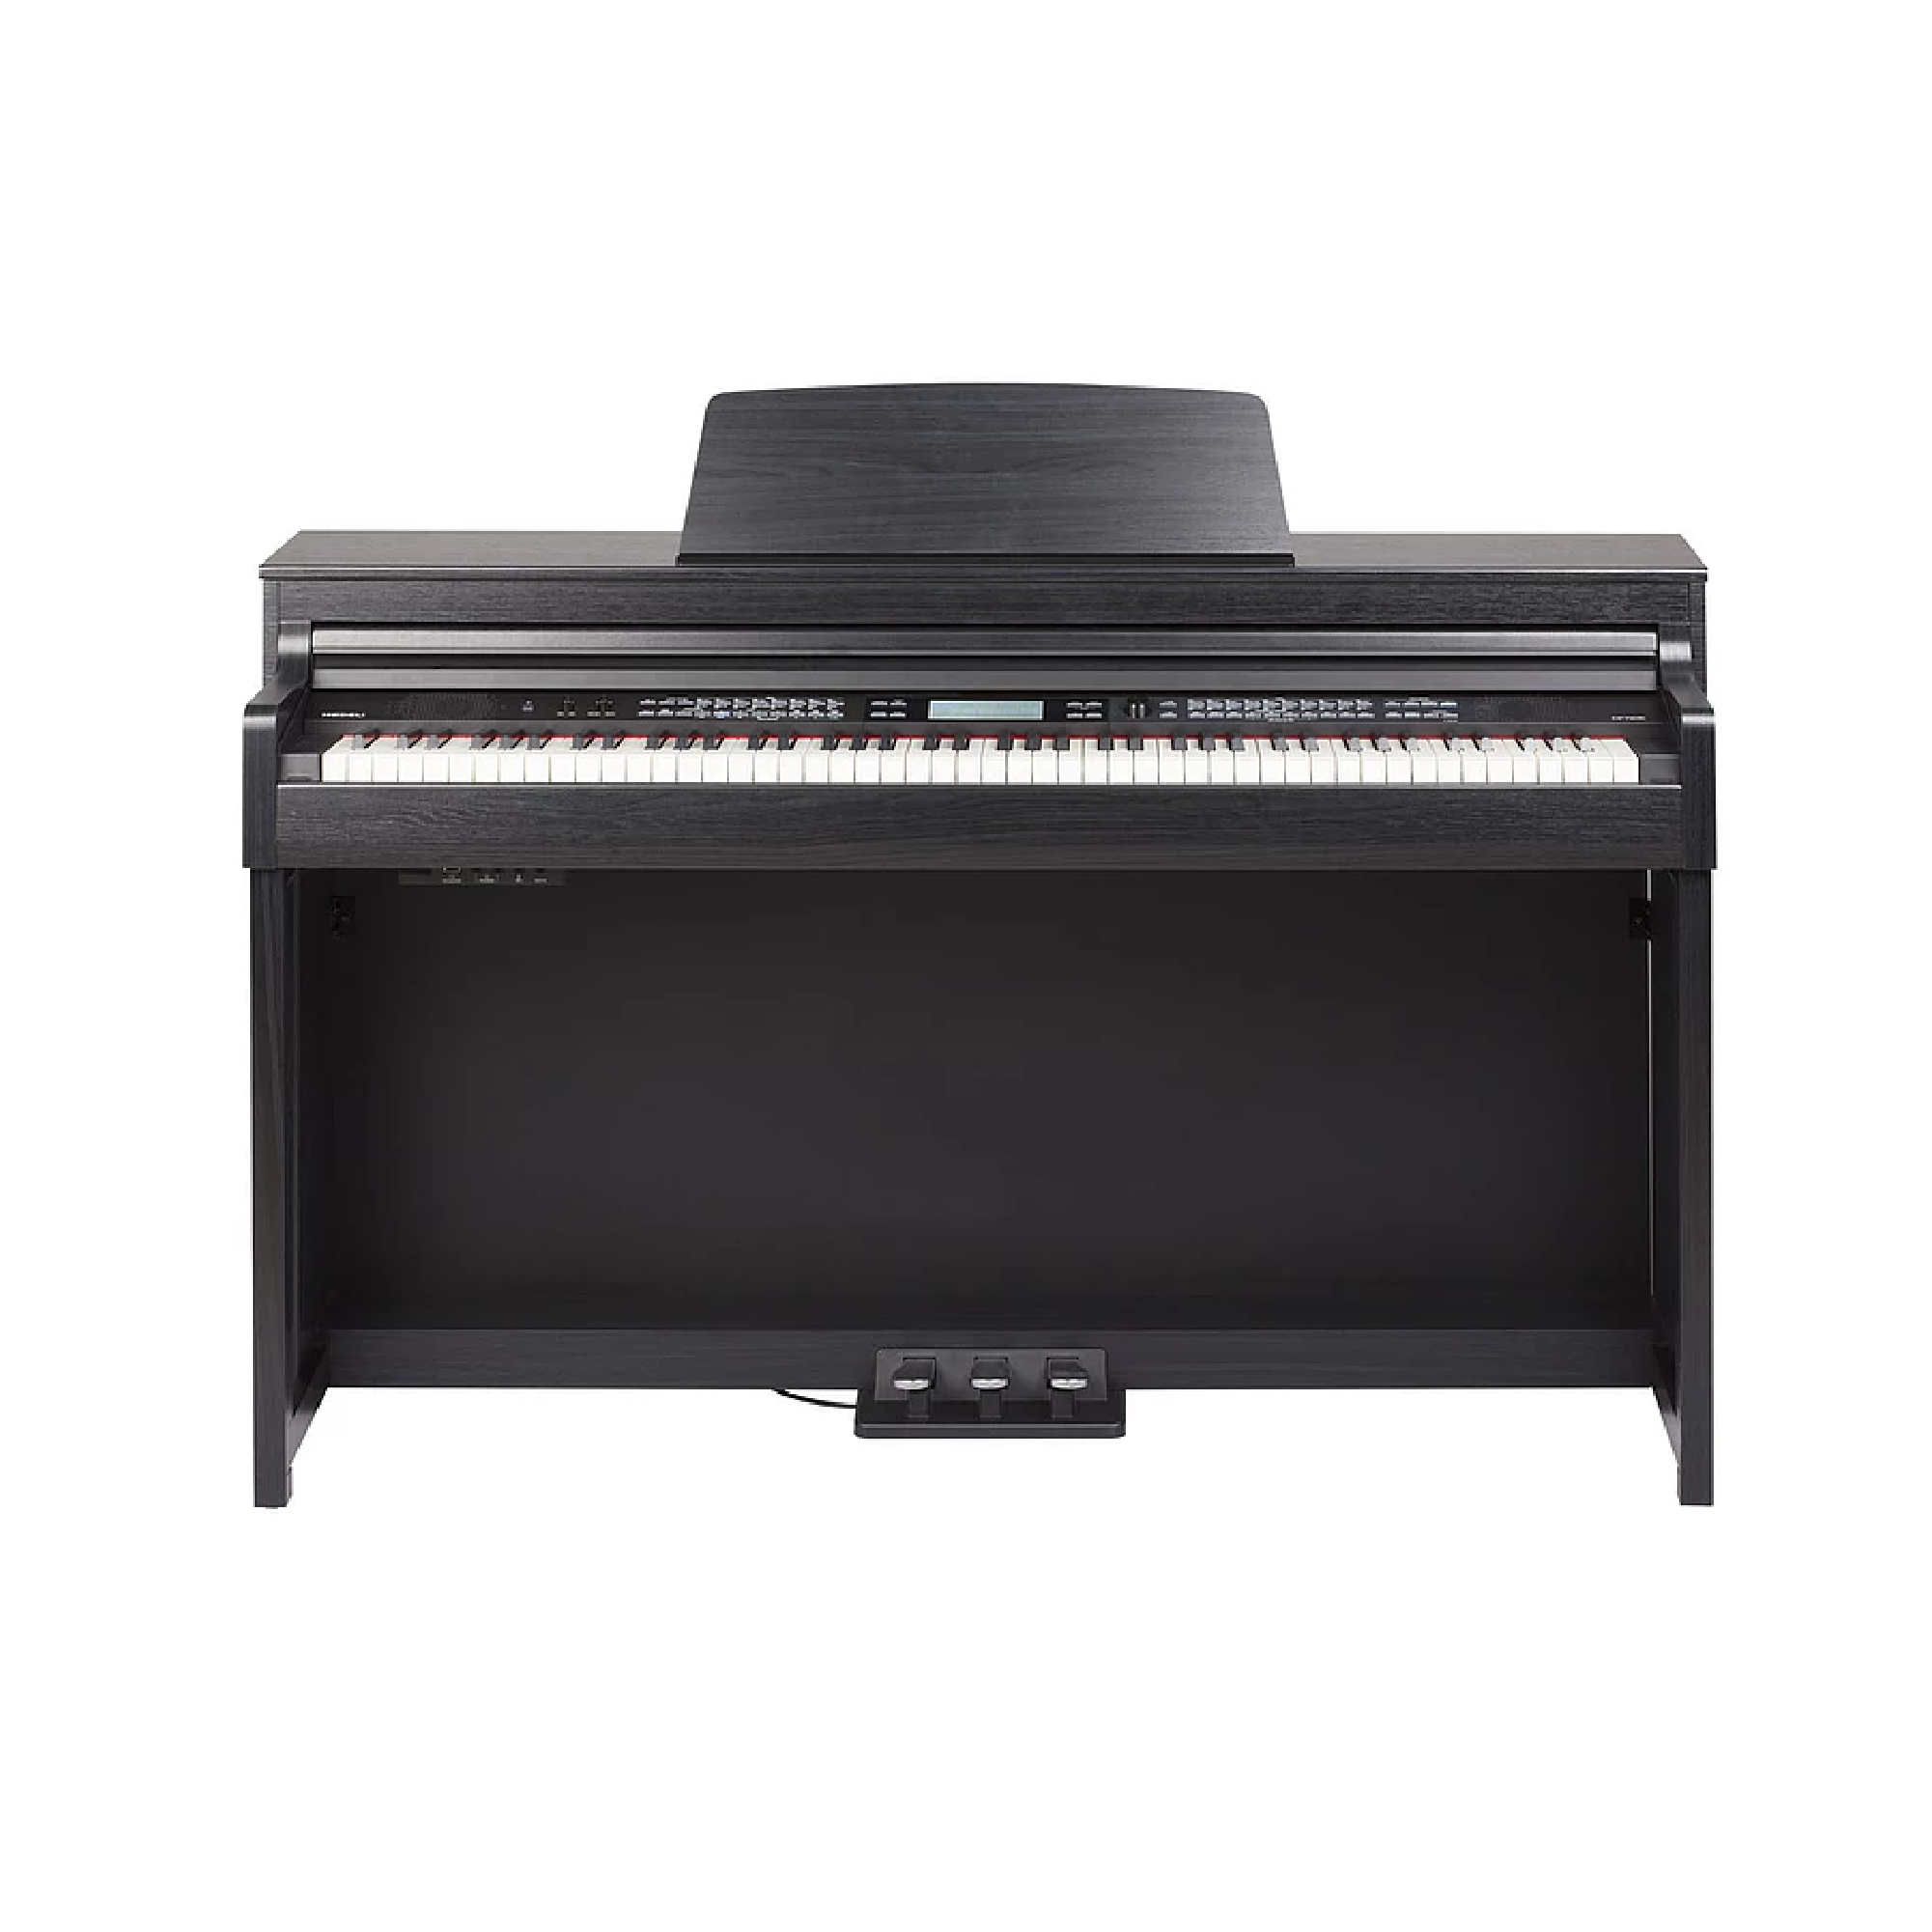 PIANO DIGITAL DP 740K MEDELI